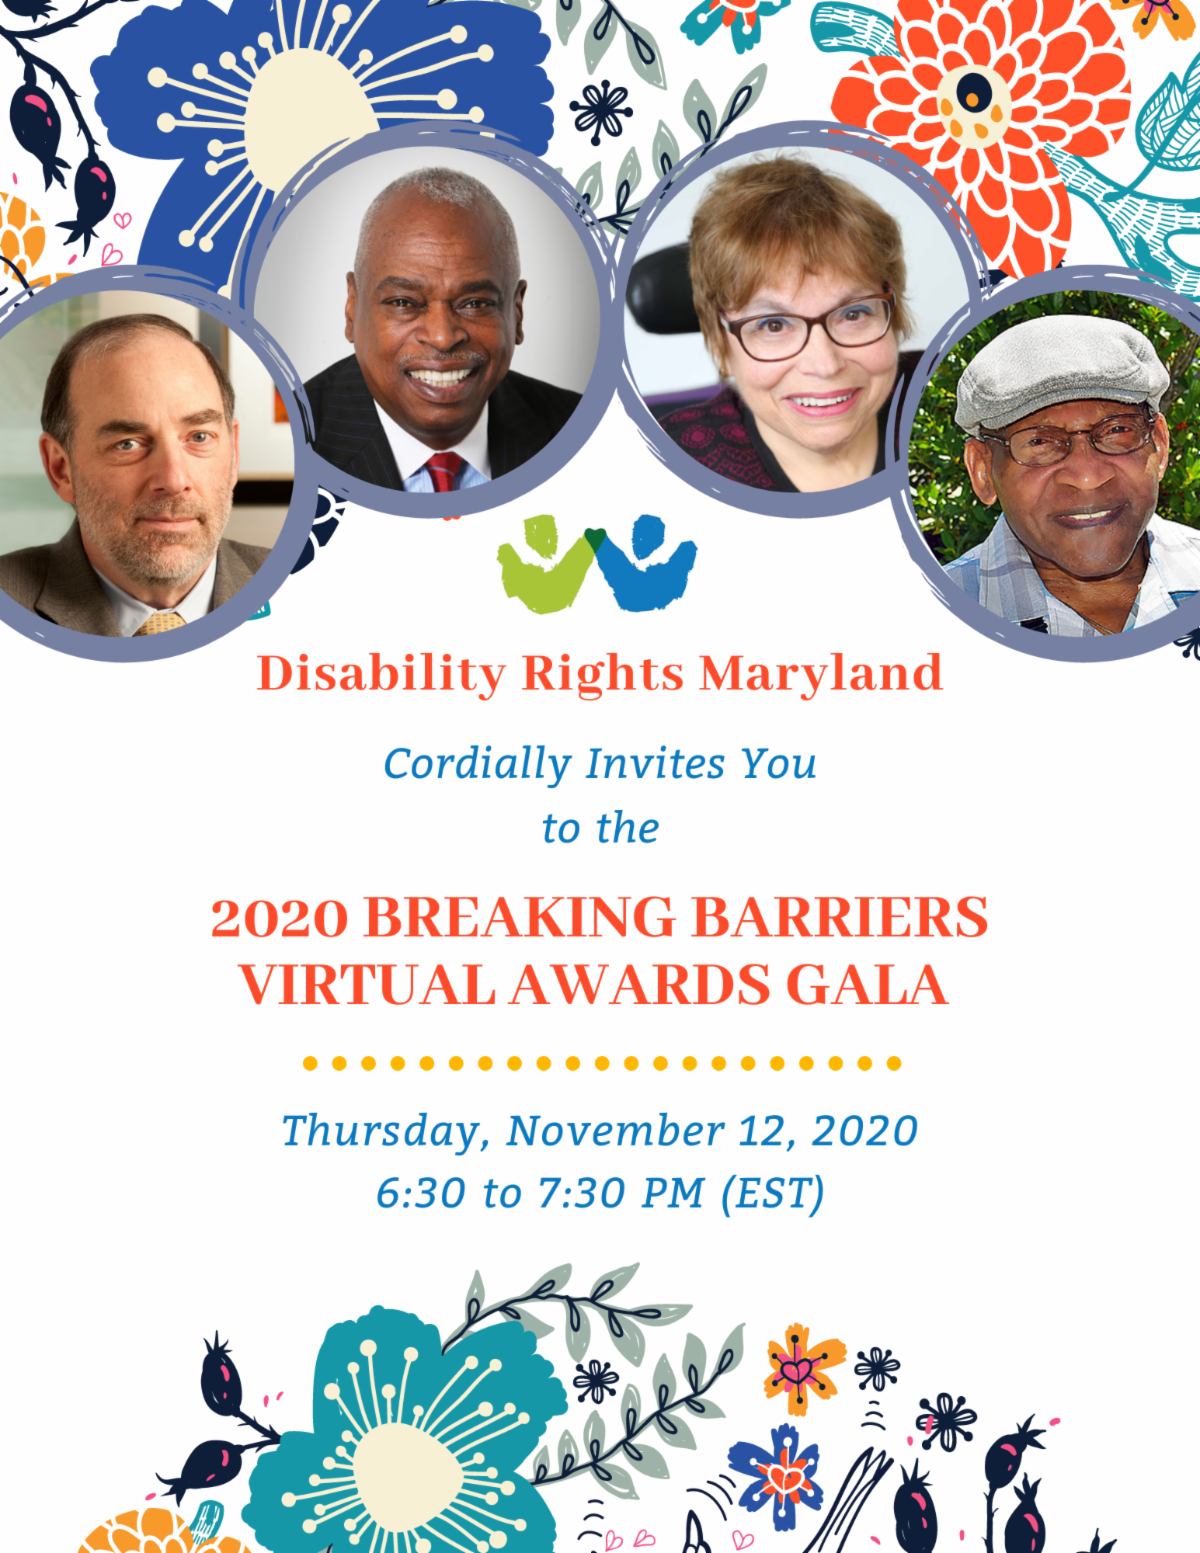 The cover of the Sponsorship Package of Disability Rights Maryland's 2020 Breaking Barriers Virtual Awards Gala. It features floral accents and pictures of Judith Heumann, Floyd Hartley, Wade Henderson and Andrew Levy.